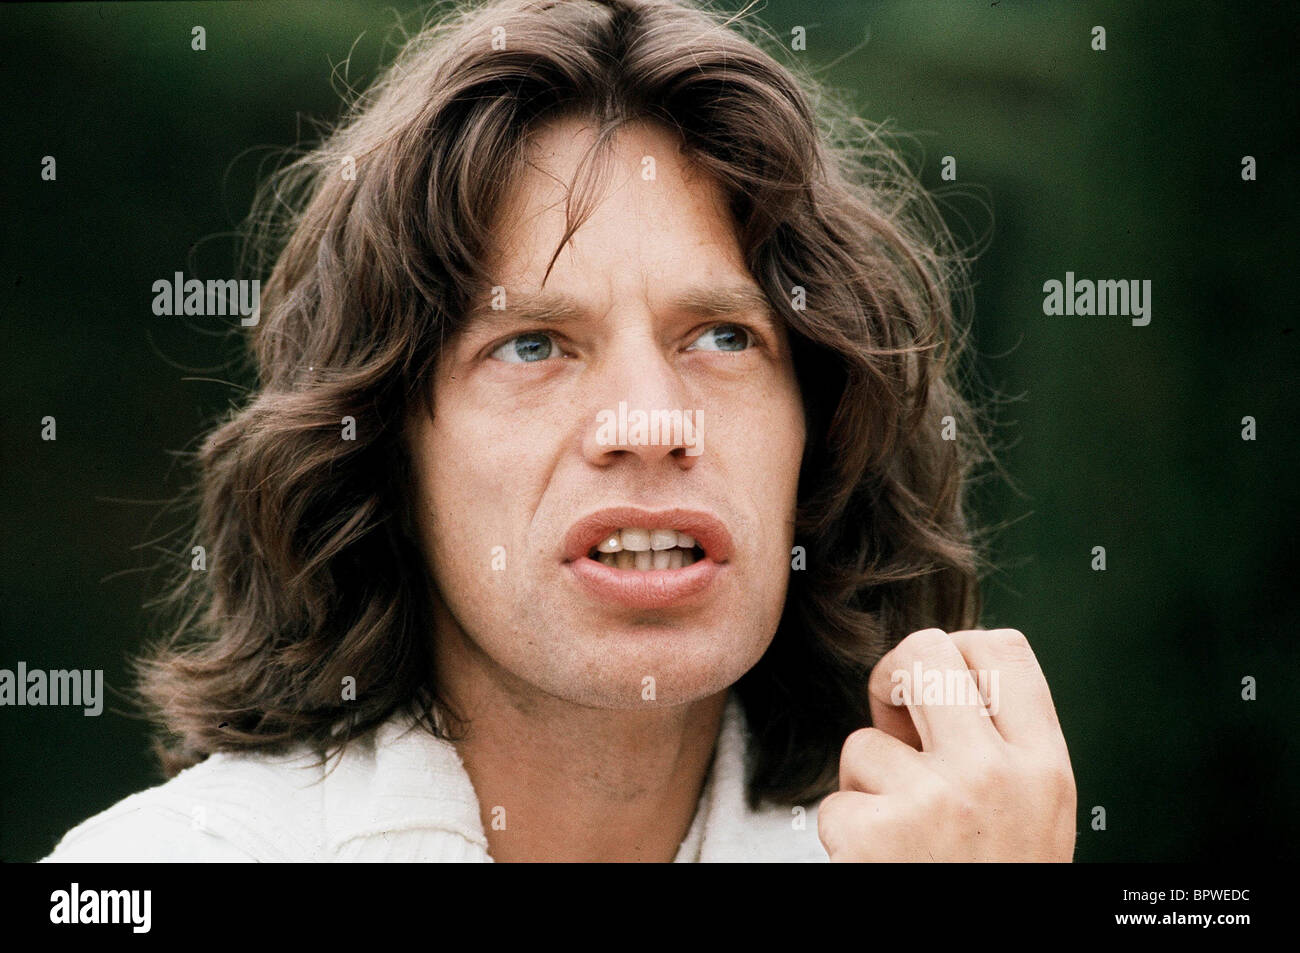 "MICK JAGGER MUSICIAN ""ROLLING STONES"" (1975) Stock Photo"